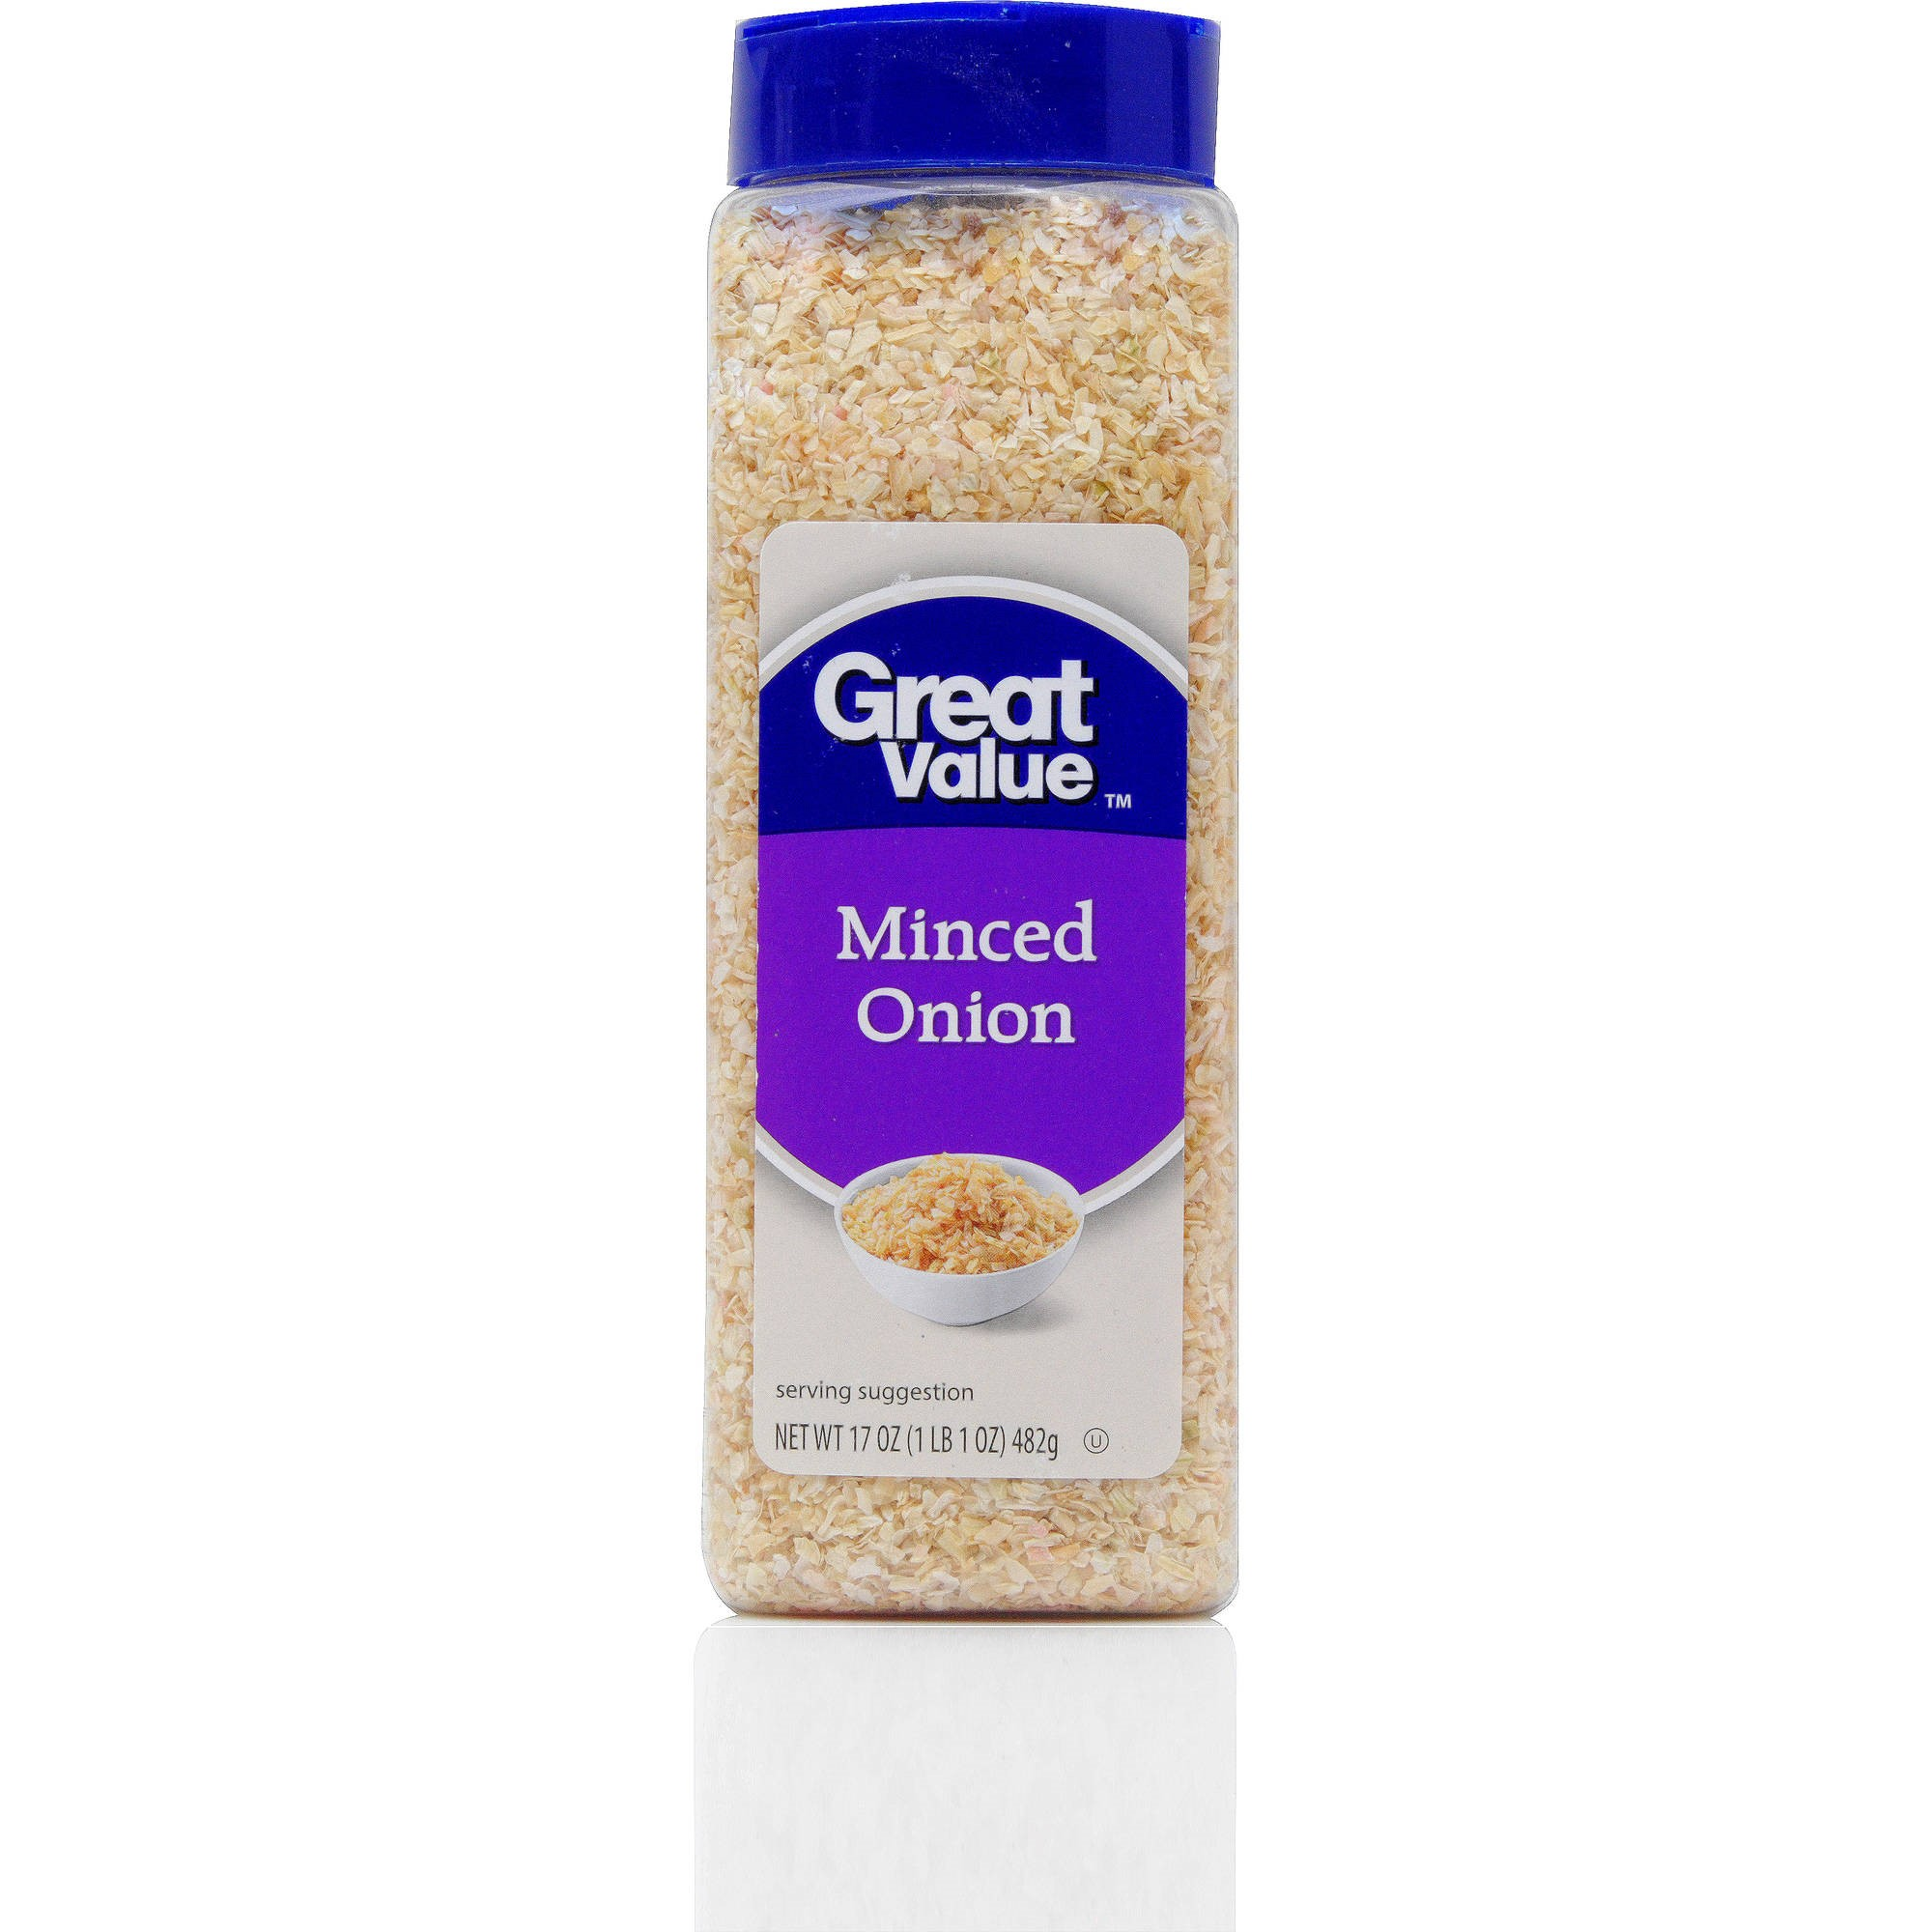 Click here to buy Great Value Minced Onion Seasoning, 17 oz by WAL-MART STORES INC.